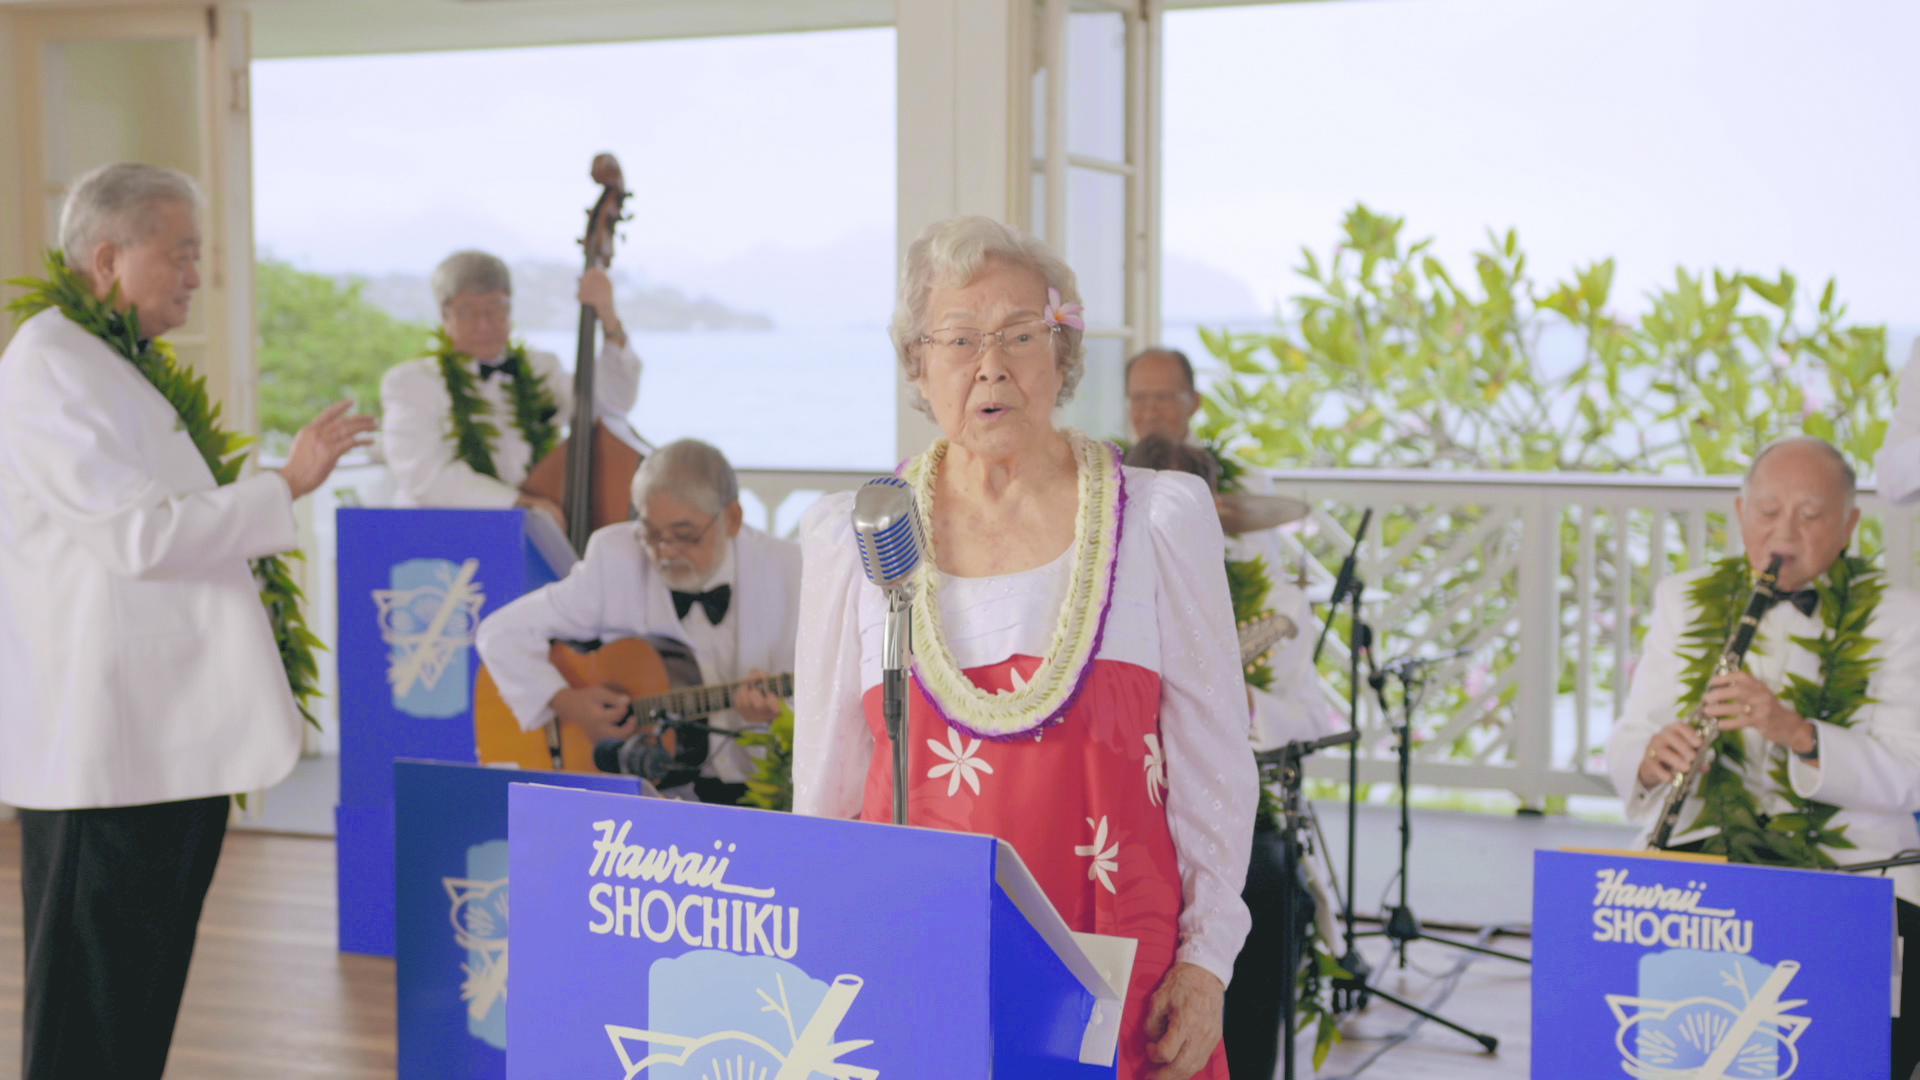 """Grace Amemiya was an original member of Hawaii Shochiku Orchestra, which was a popular Nisei orchestra post-World War II. In the film, she sang """"Wakare no Iso Chidori,"""" as a representation of the Nisei generation in Hawai'i."""